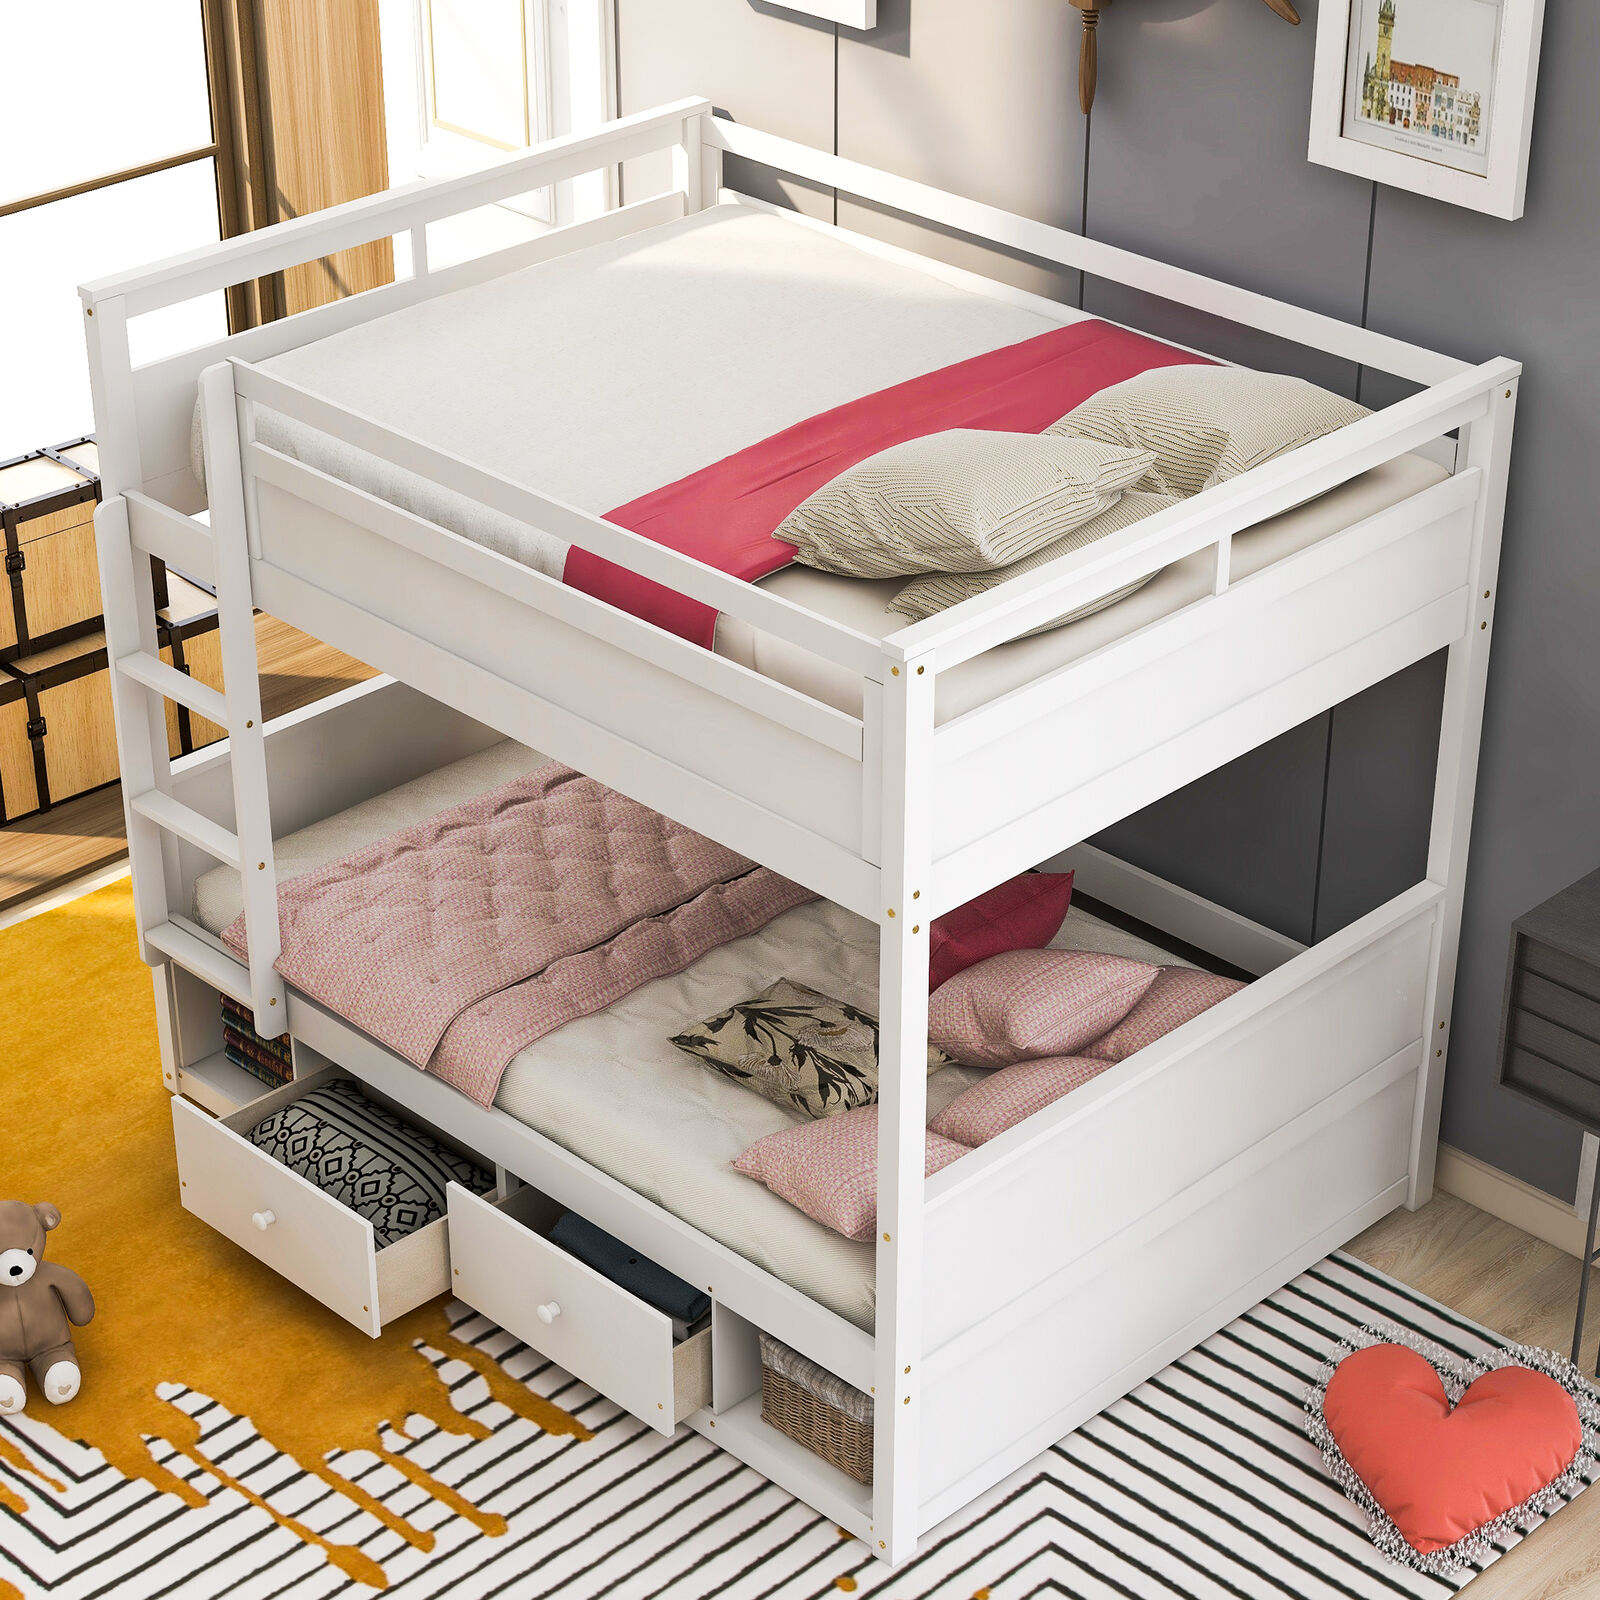 Metal Full Over Full Bunk Bed With Straight Rounded Legs White Full For Sale Online Ebay